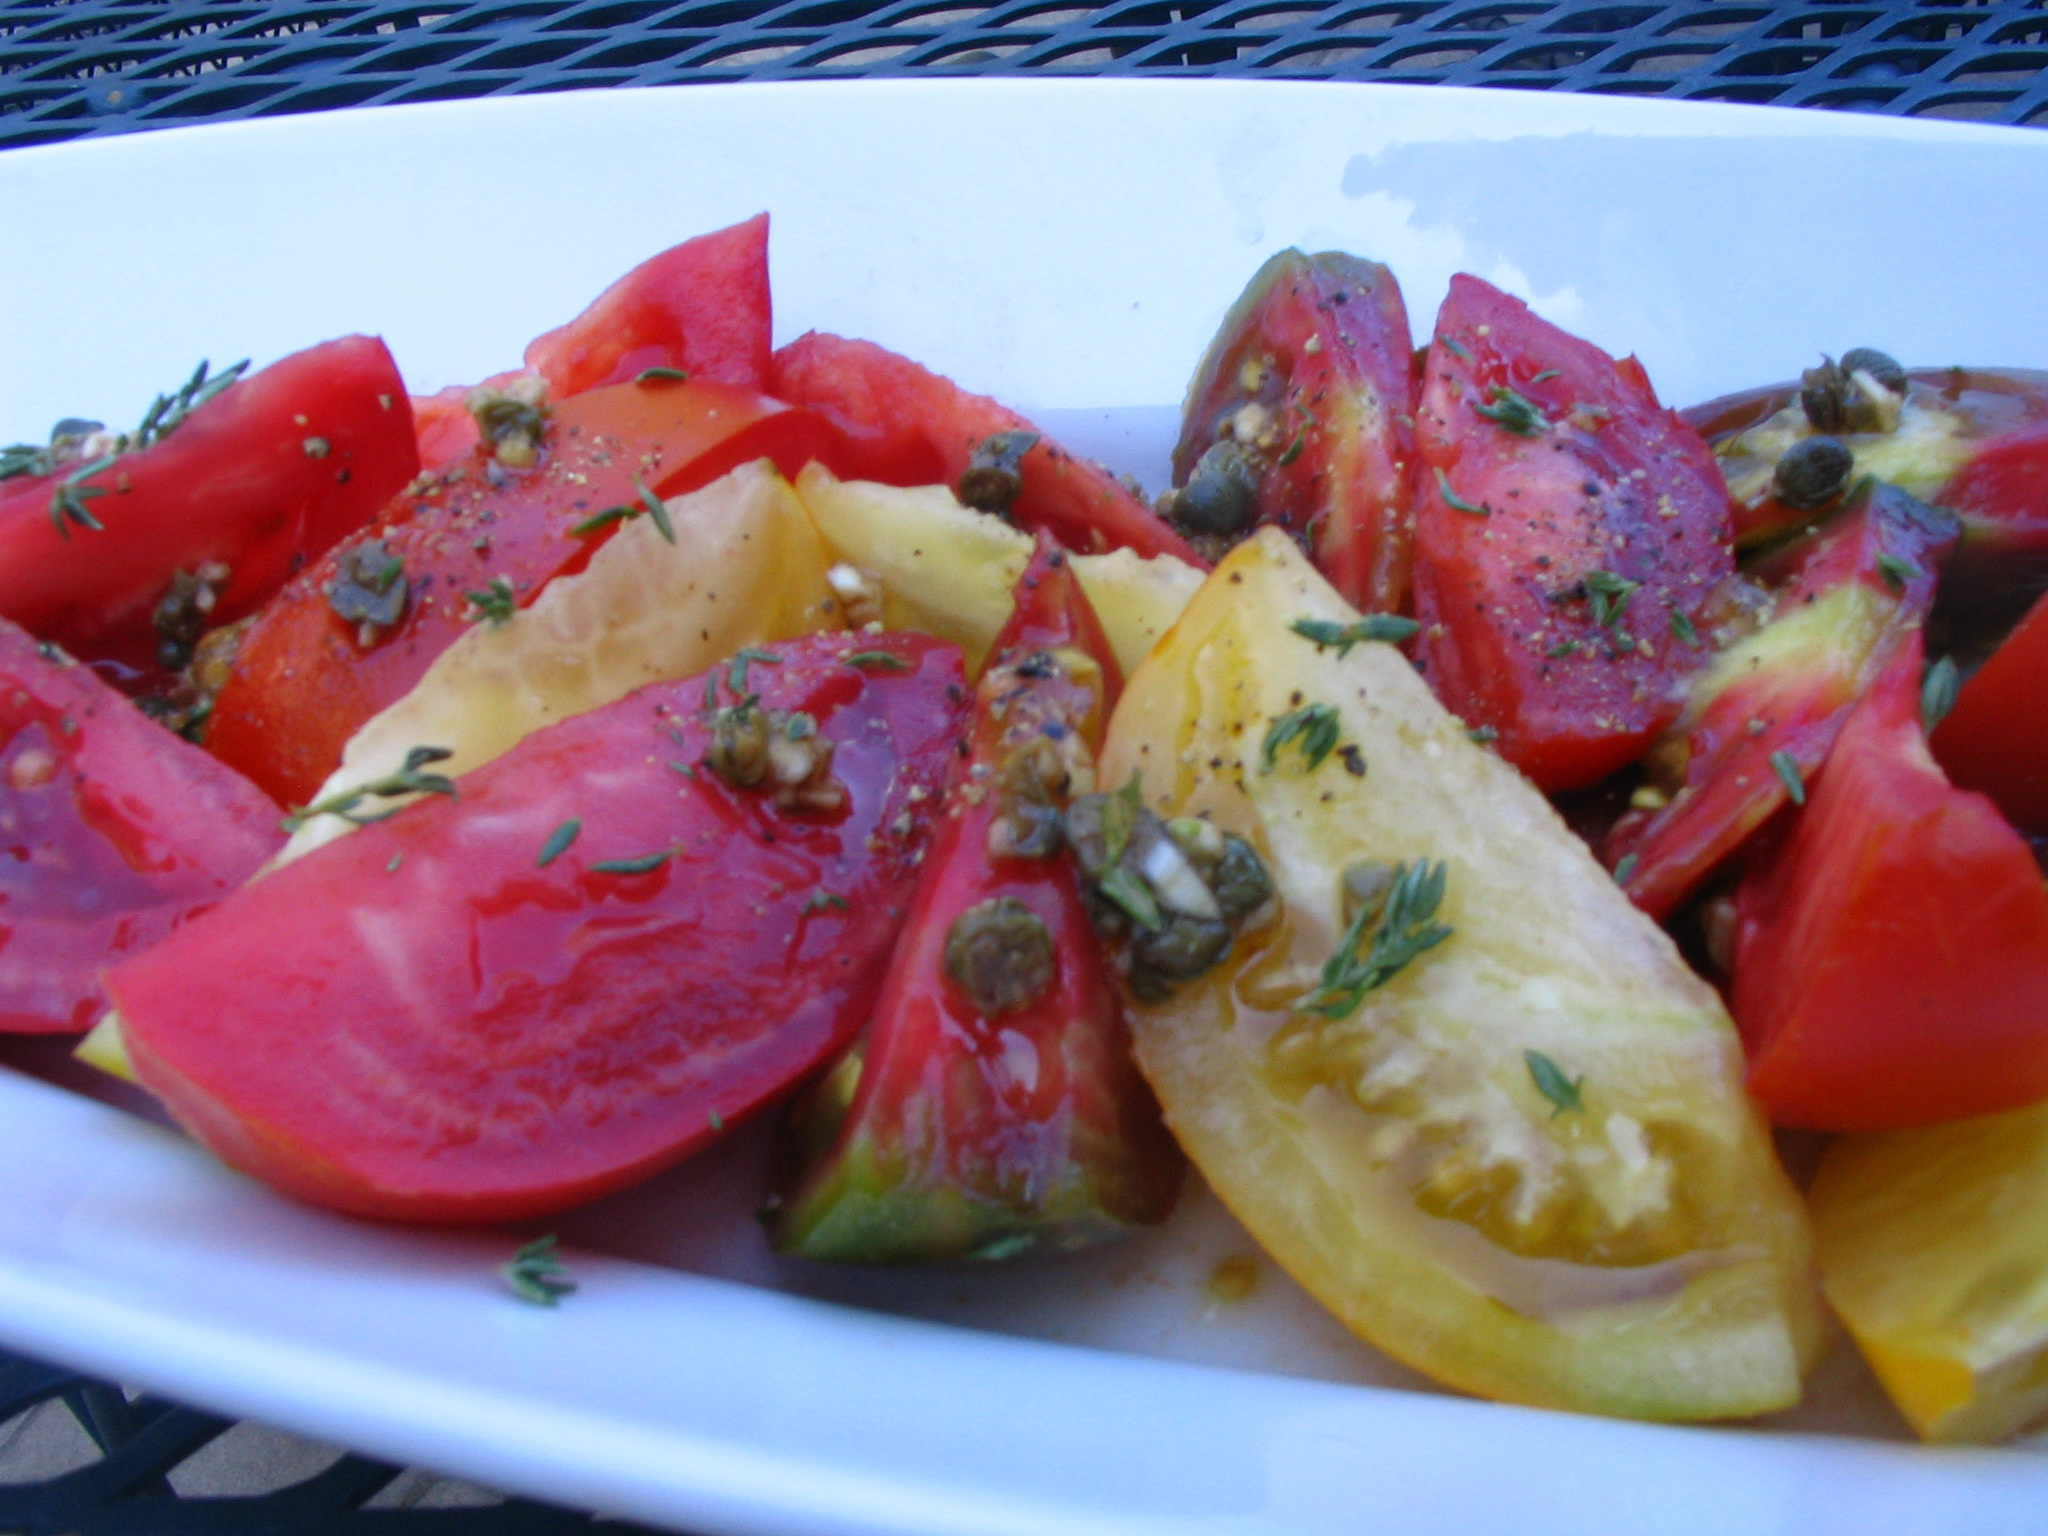 Heirloom Tomato Salad with Capers and Golden Balsamic Vinegar